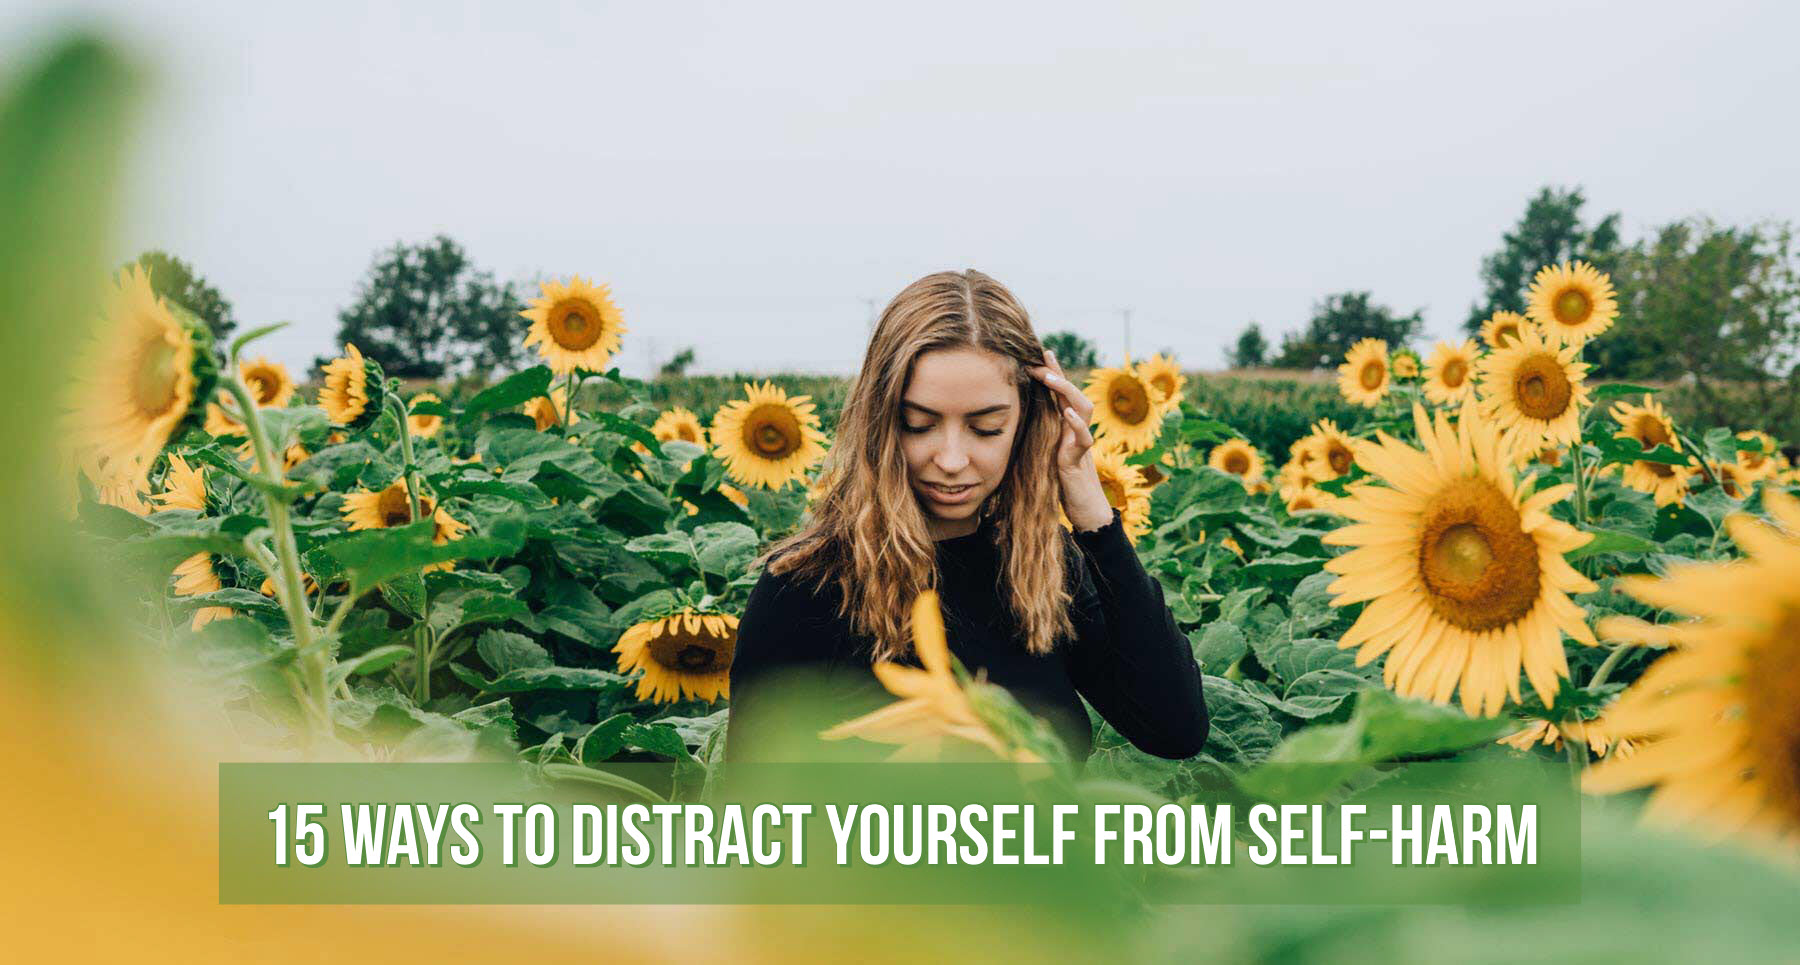 15 Ways To Distract Yourself From Self-Harm Practical Ways to Resist the Urge to Cut or Self-Harm